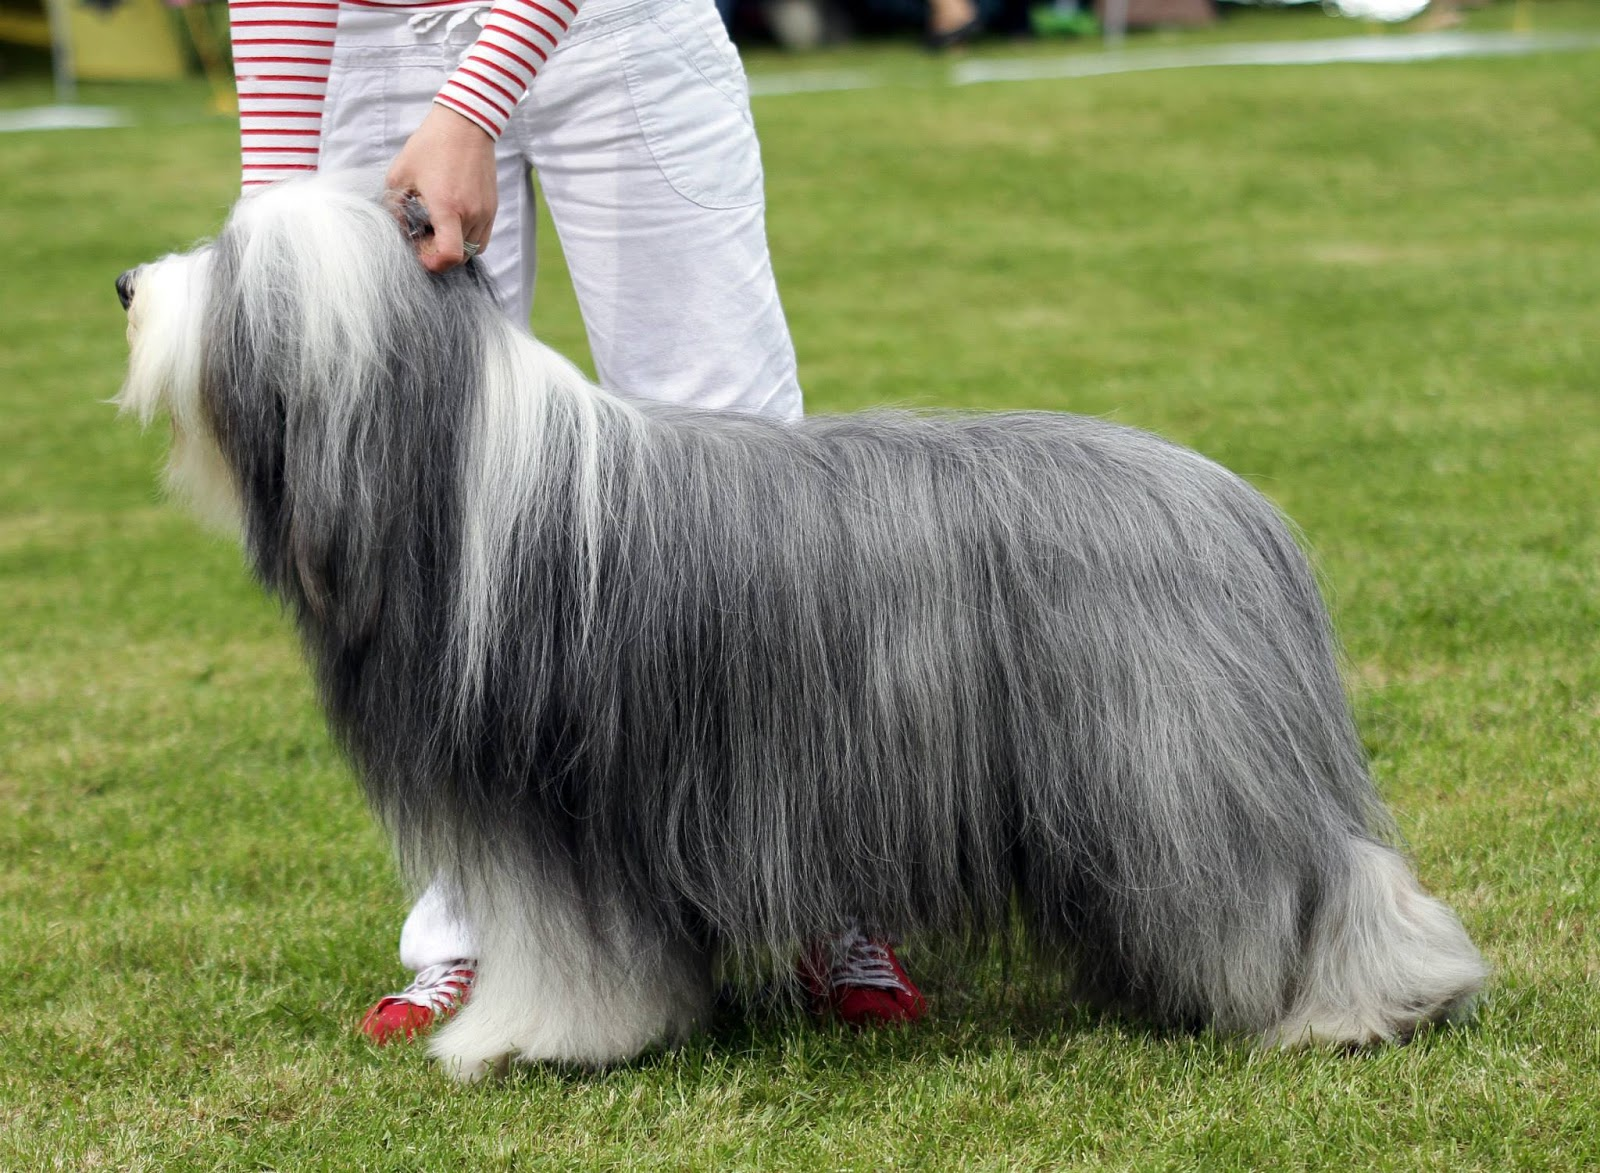 Best in Show - Winners of the International dog show in Kotka (Finland), 15 - 16 August 2015